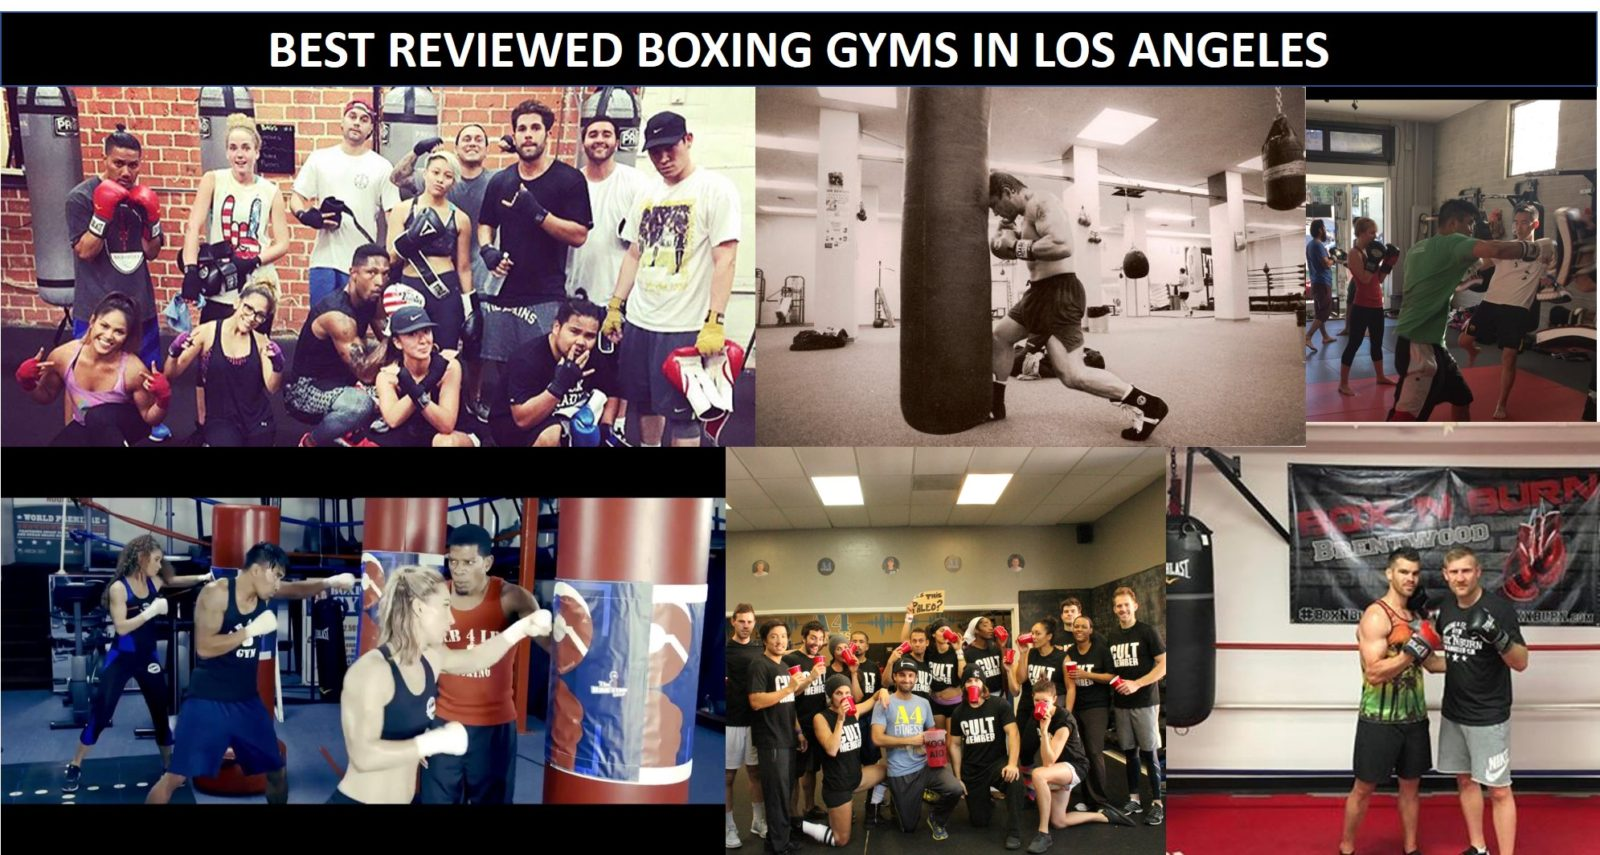 The Best Reviewed Boxing Gyms In Los Angeles